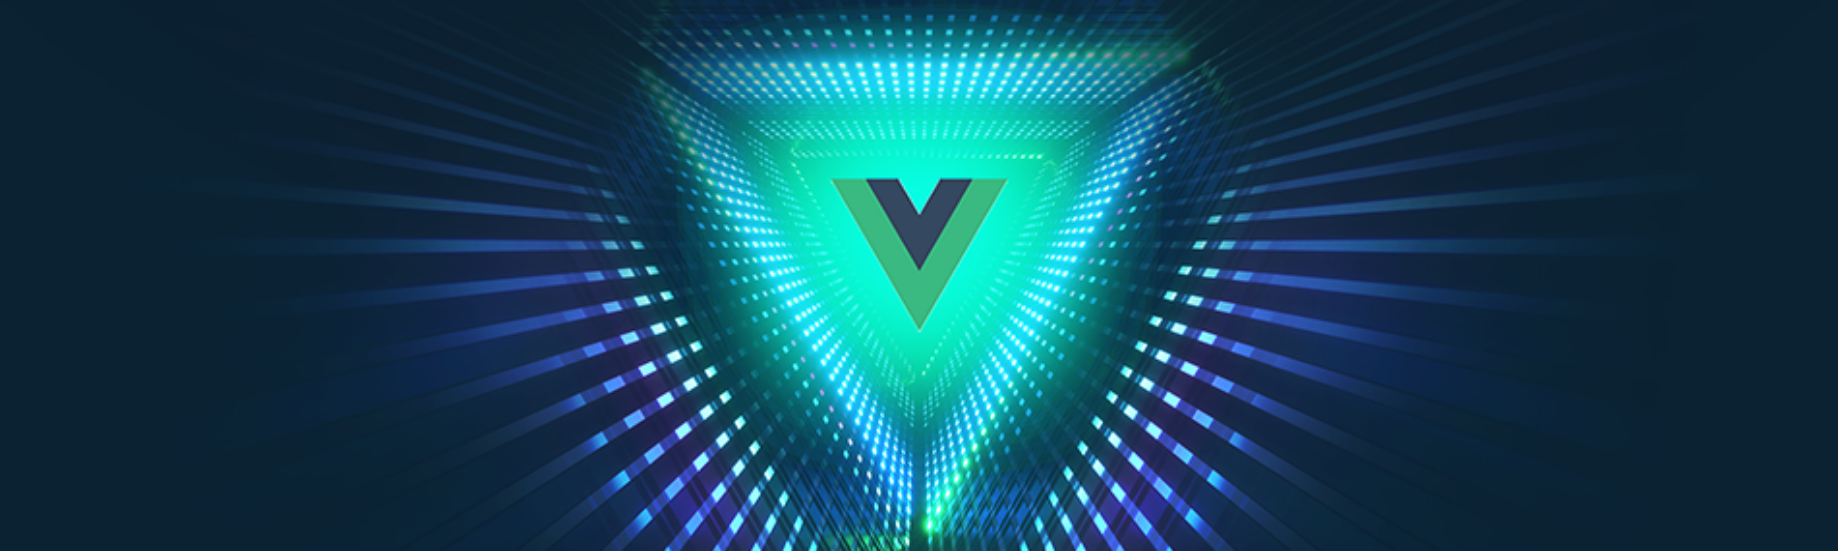 Vuex—The Deep Dive